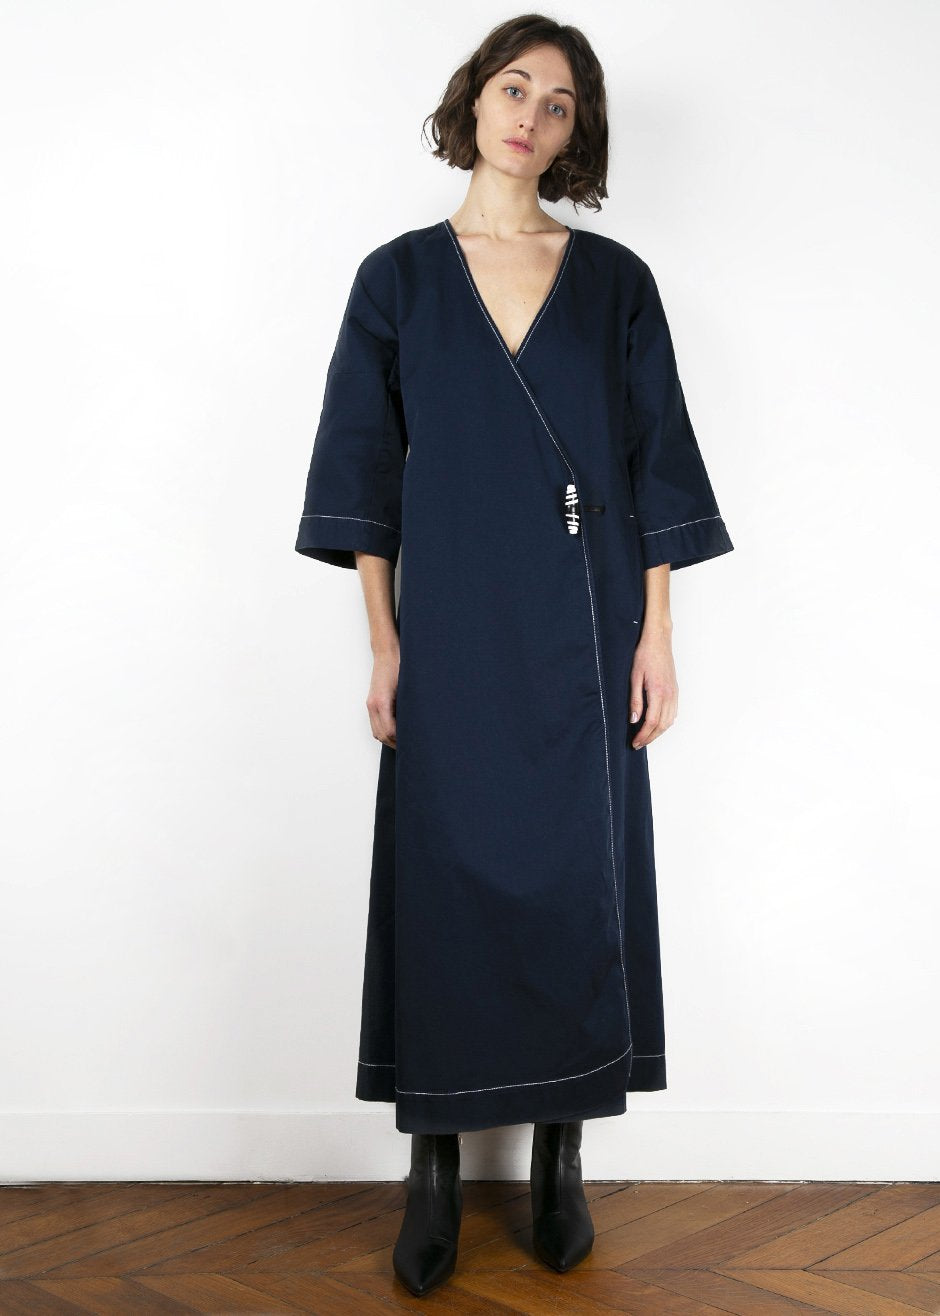 Ganni Hewson Dress in Total Eclipse